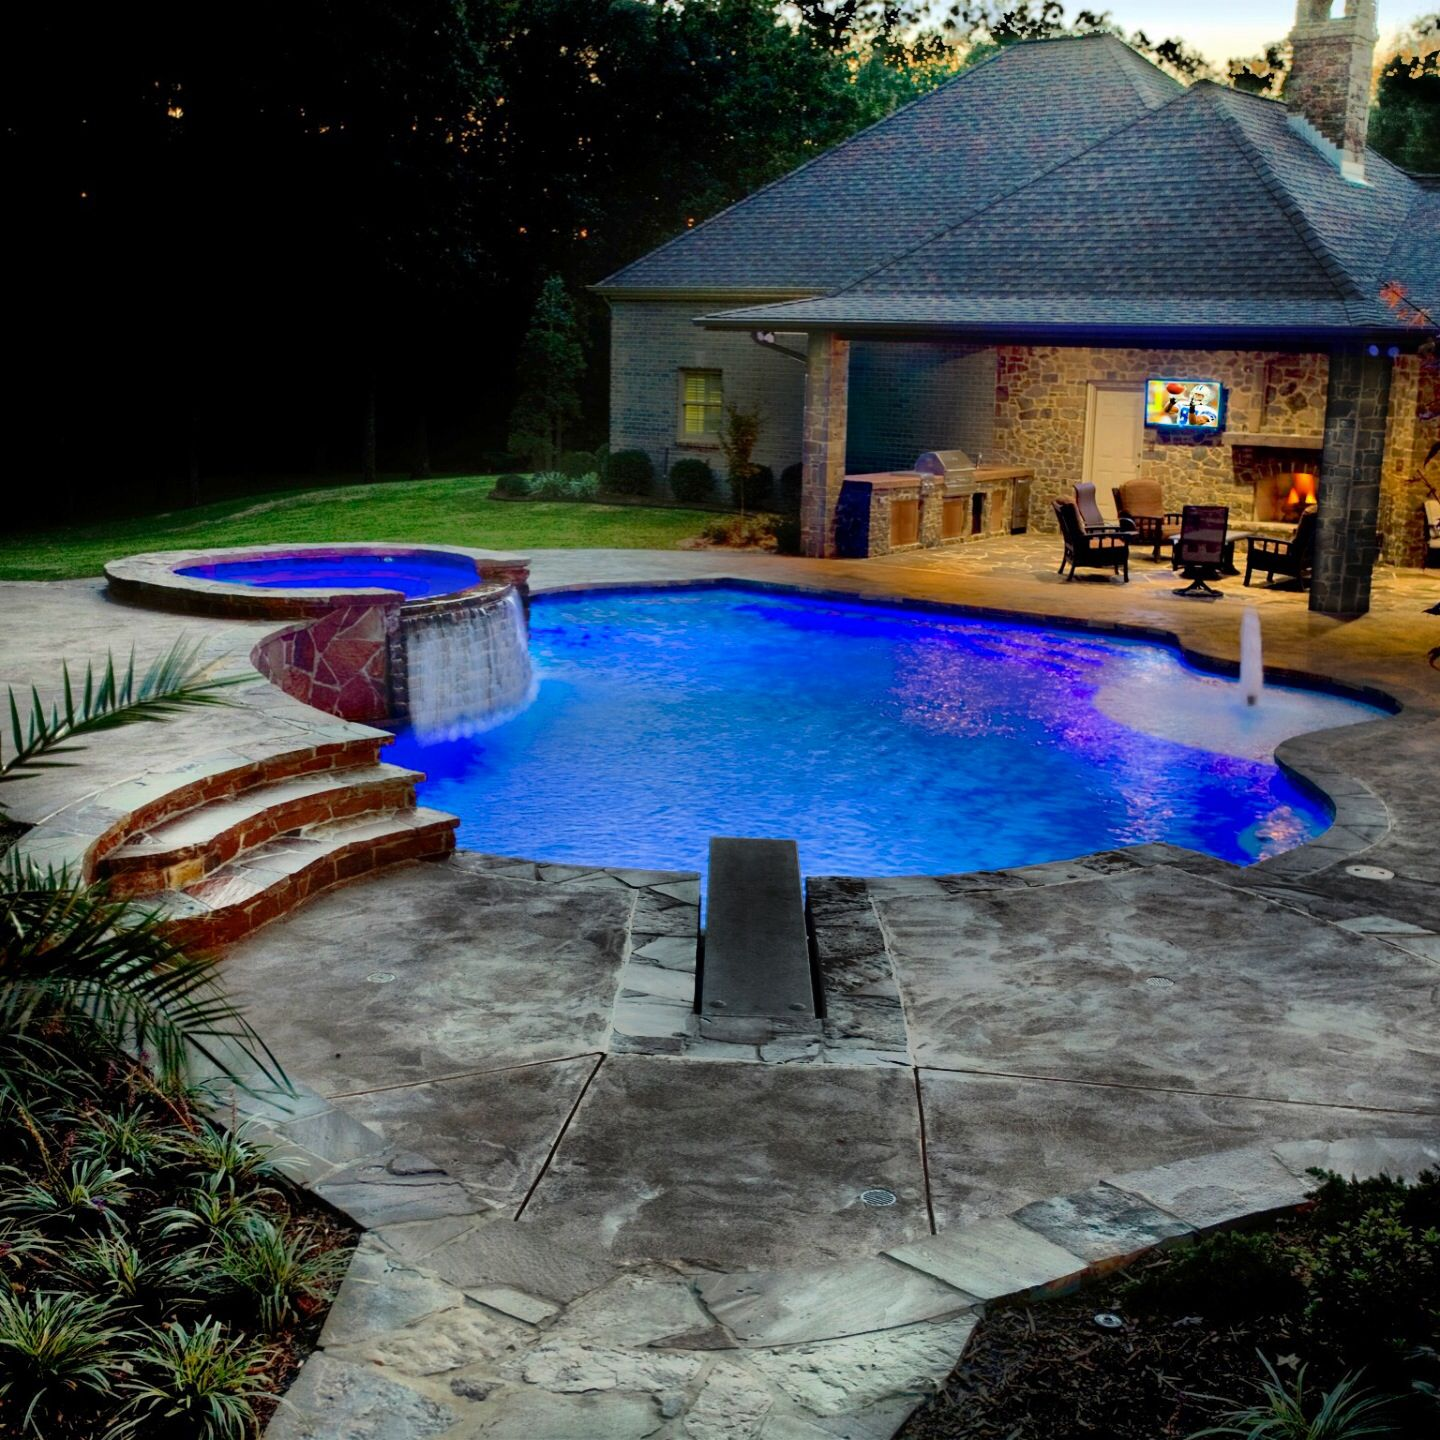 #LED #lighting in a custom #radius #pool and #spa #hottub ... on Outdoor Living Pool And Spa id=61496